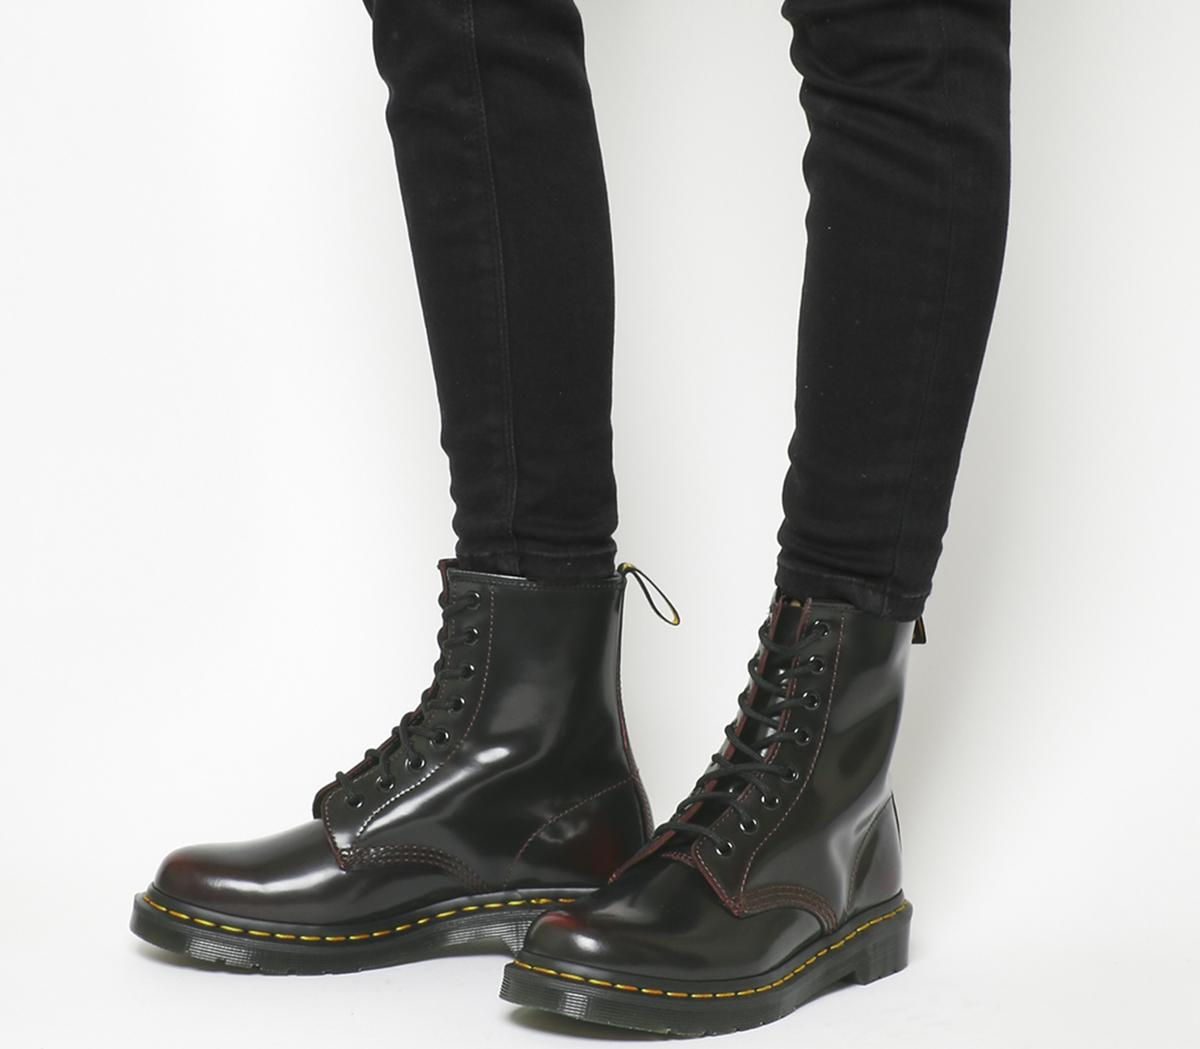 8 Eyelet Lace Up Boots